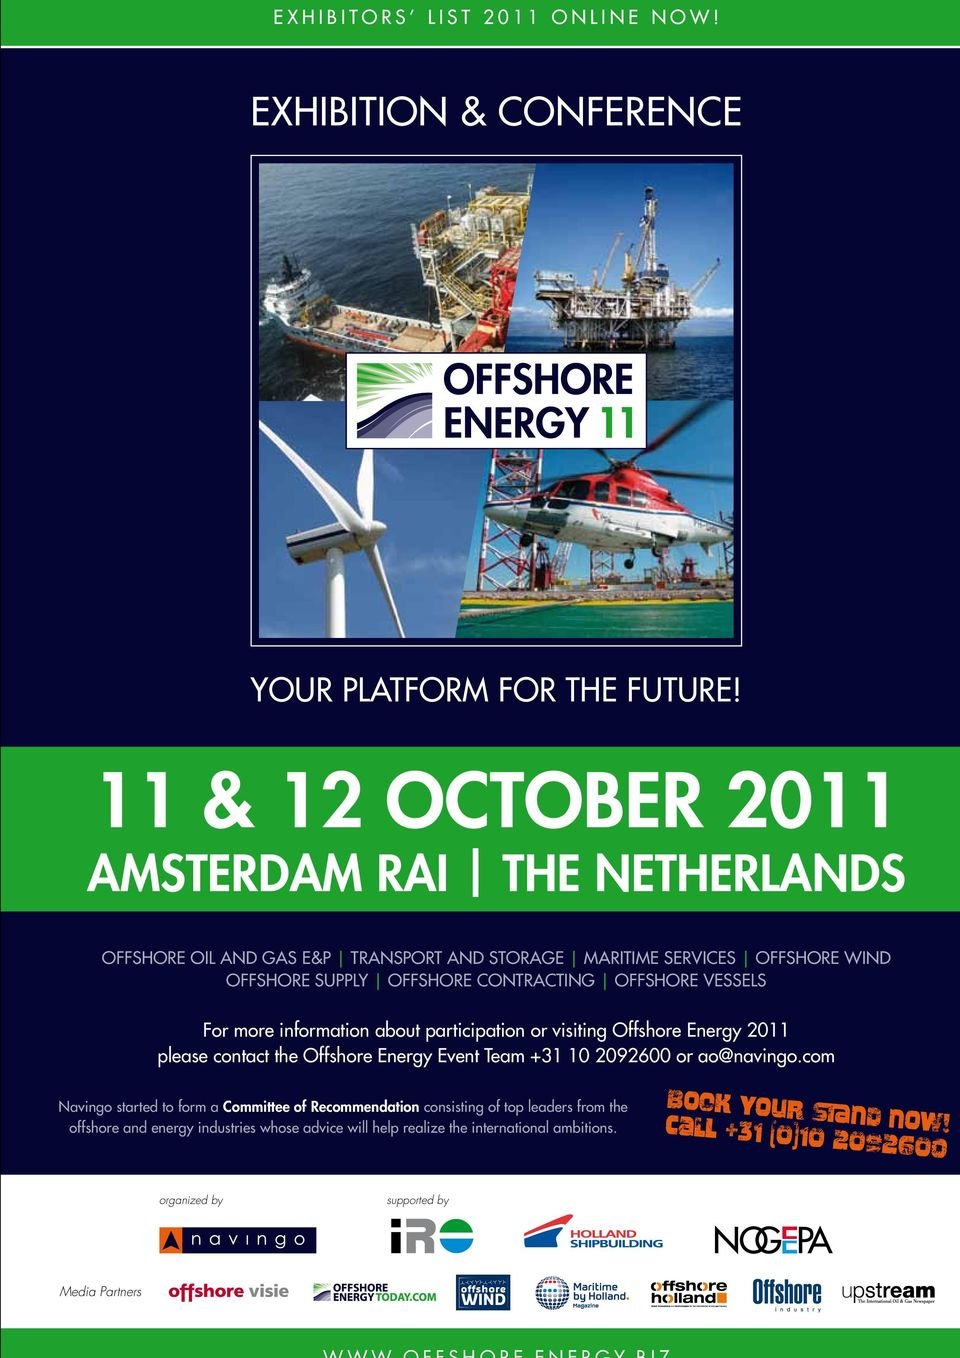 VESSELS For more information about participation or visiting Offshore Energy 2011 please contact the Offshore Energy Event Team +31 10 2092600 or ao@navingo.